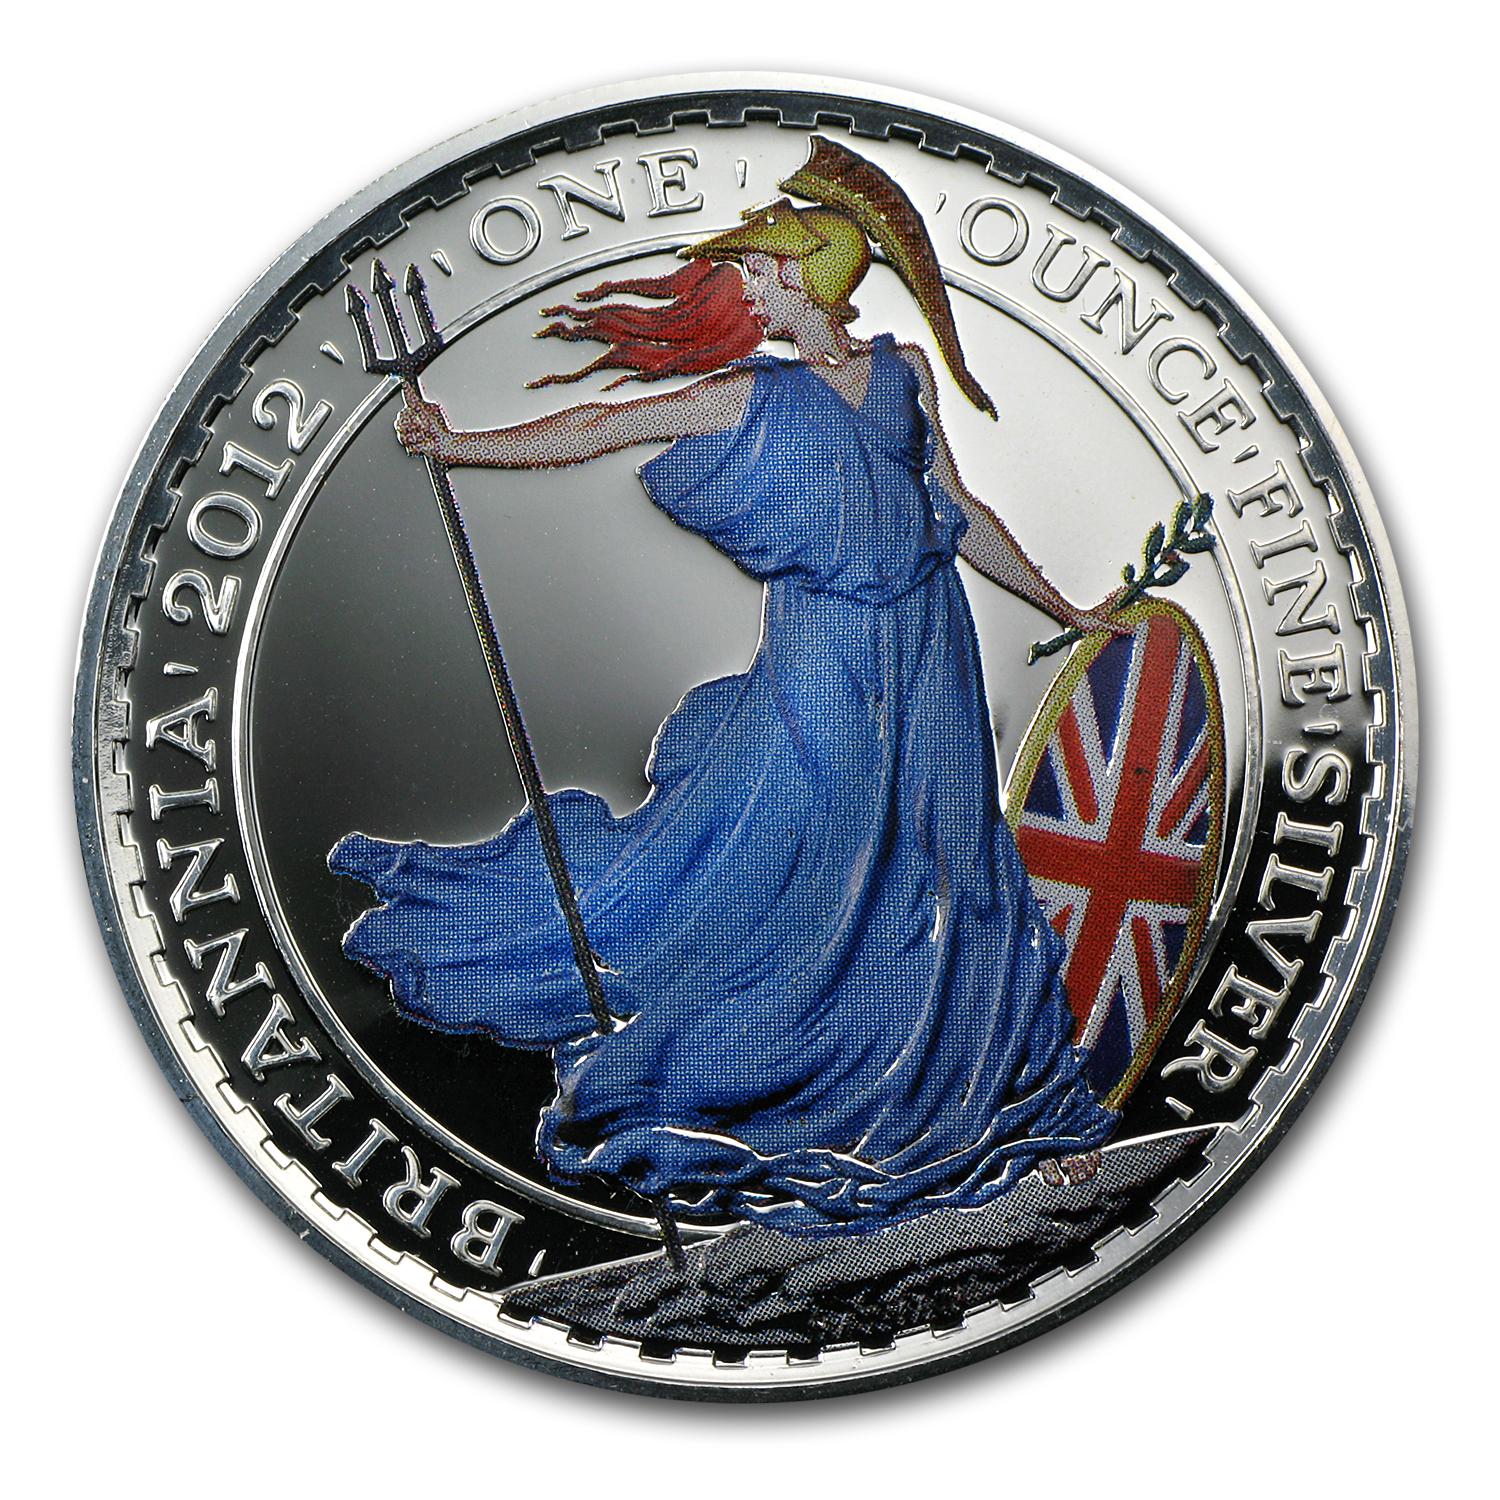 2012 1 oz Silver Britannia - Colorized